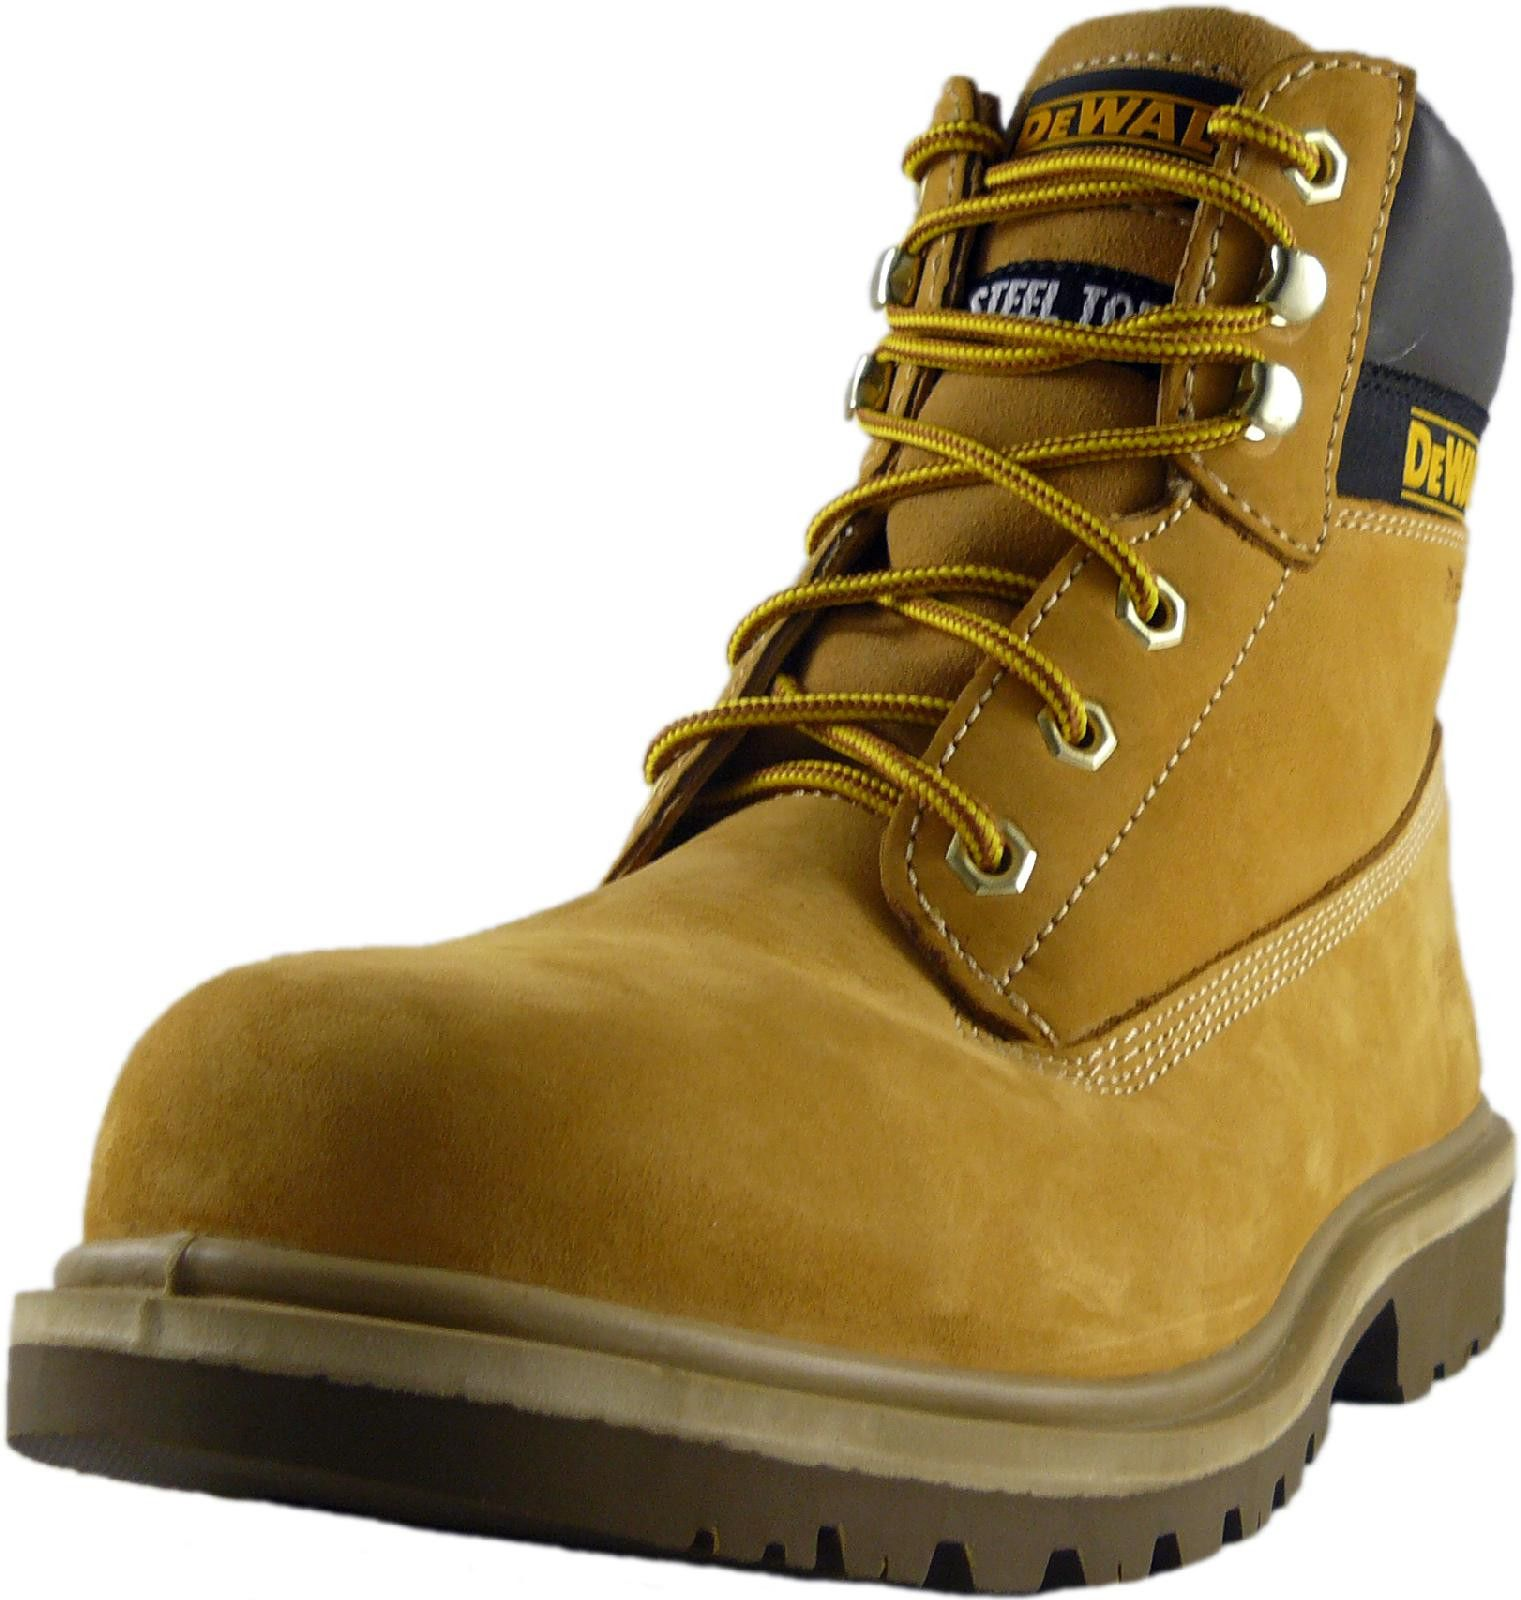 2359a818902 DeWalt Workwear - Steel Toe Explorer 2 Work Boot - Honey Brown ...